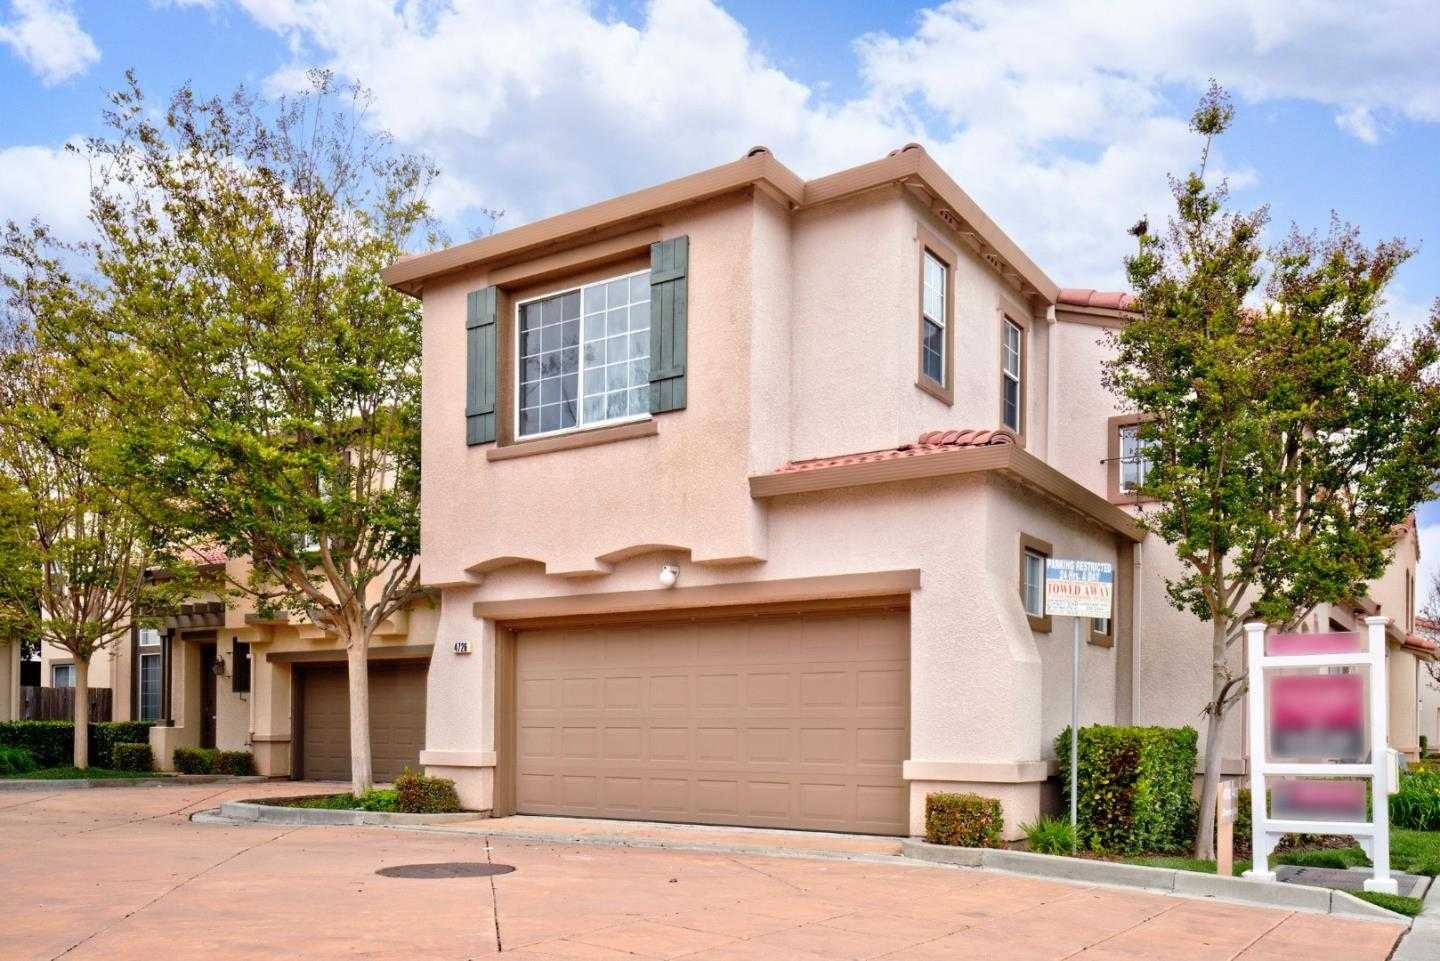 $1,249,000 - 3Br/3Ba -  for Sale in Santa Clara